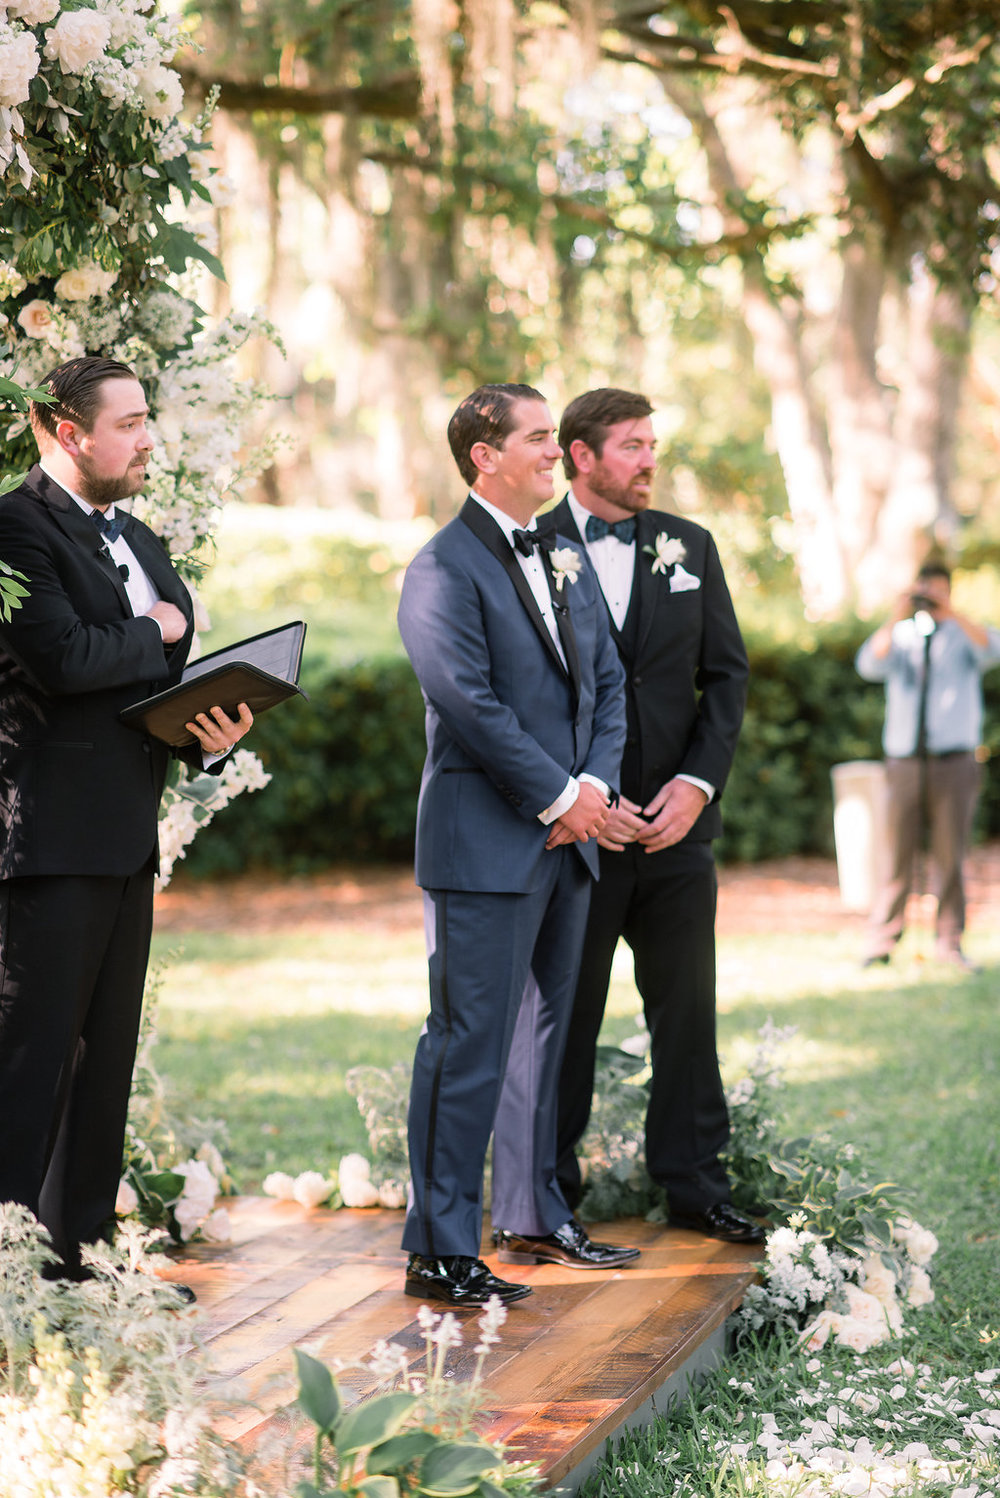 Floral Island Wedding, Events by Reagan, Kiawah Wedding, Charleston Wedding Planner,  Destination Wedding Planner, Groom, Groomsmen